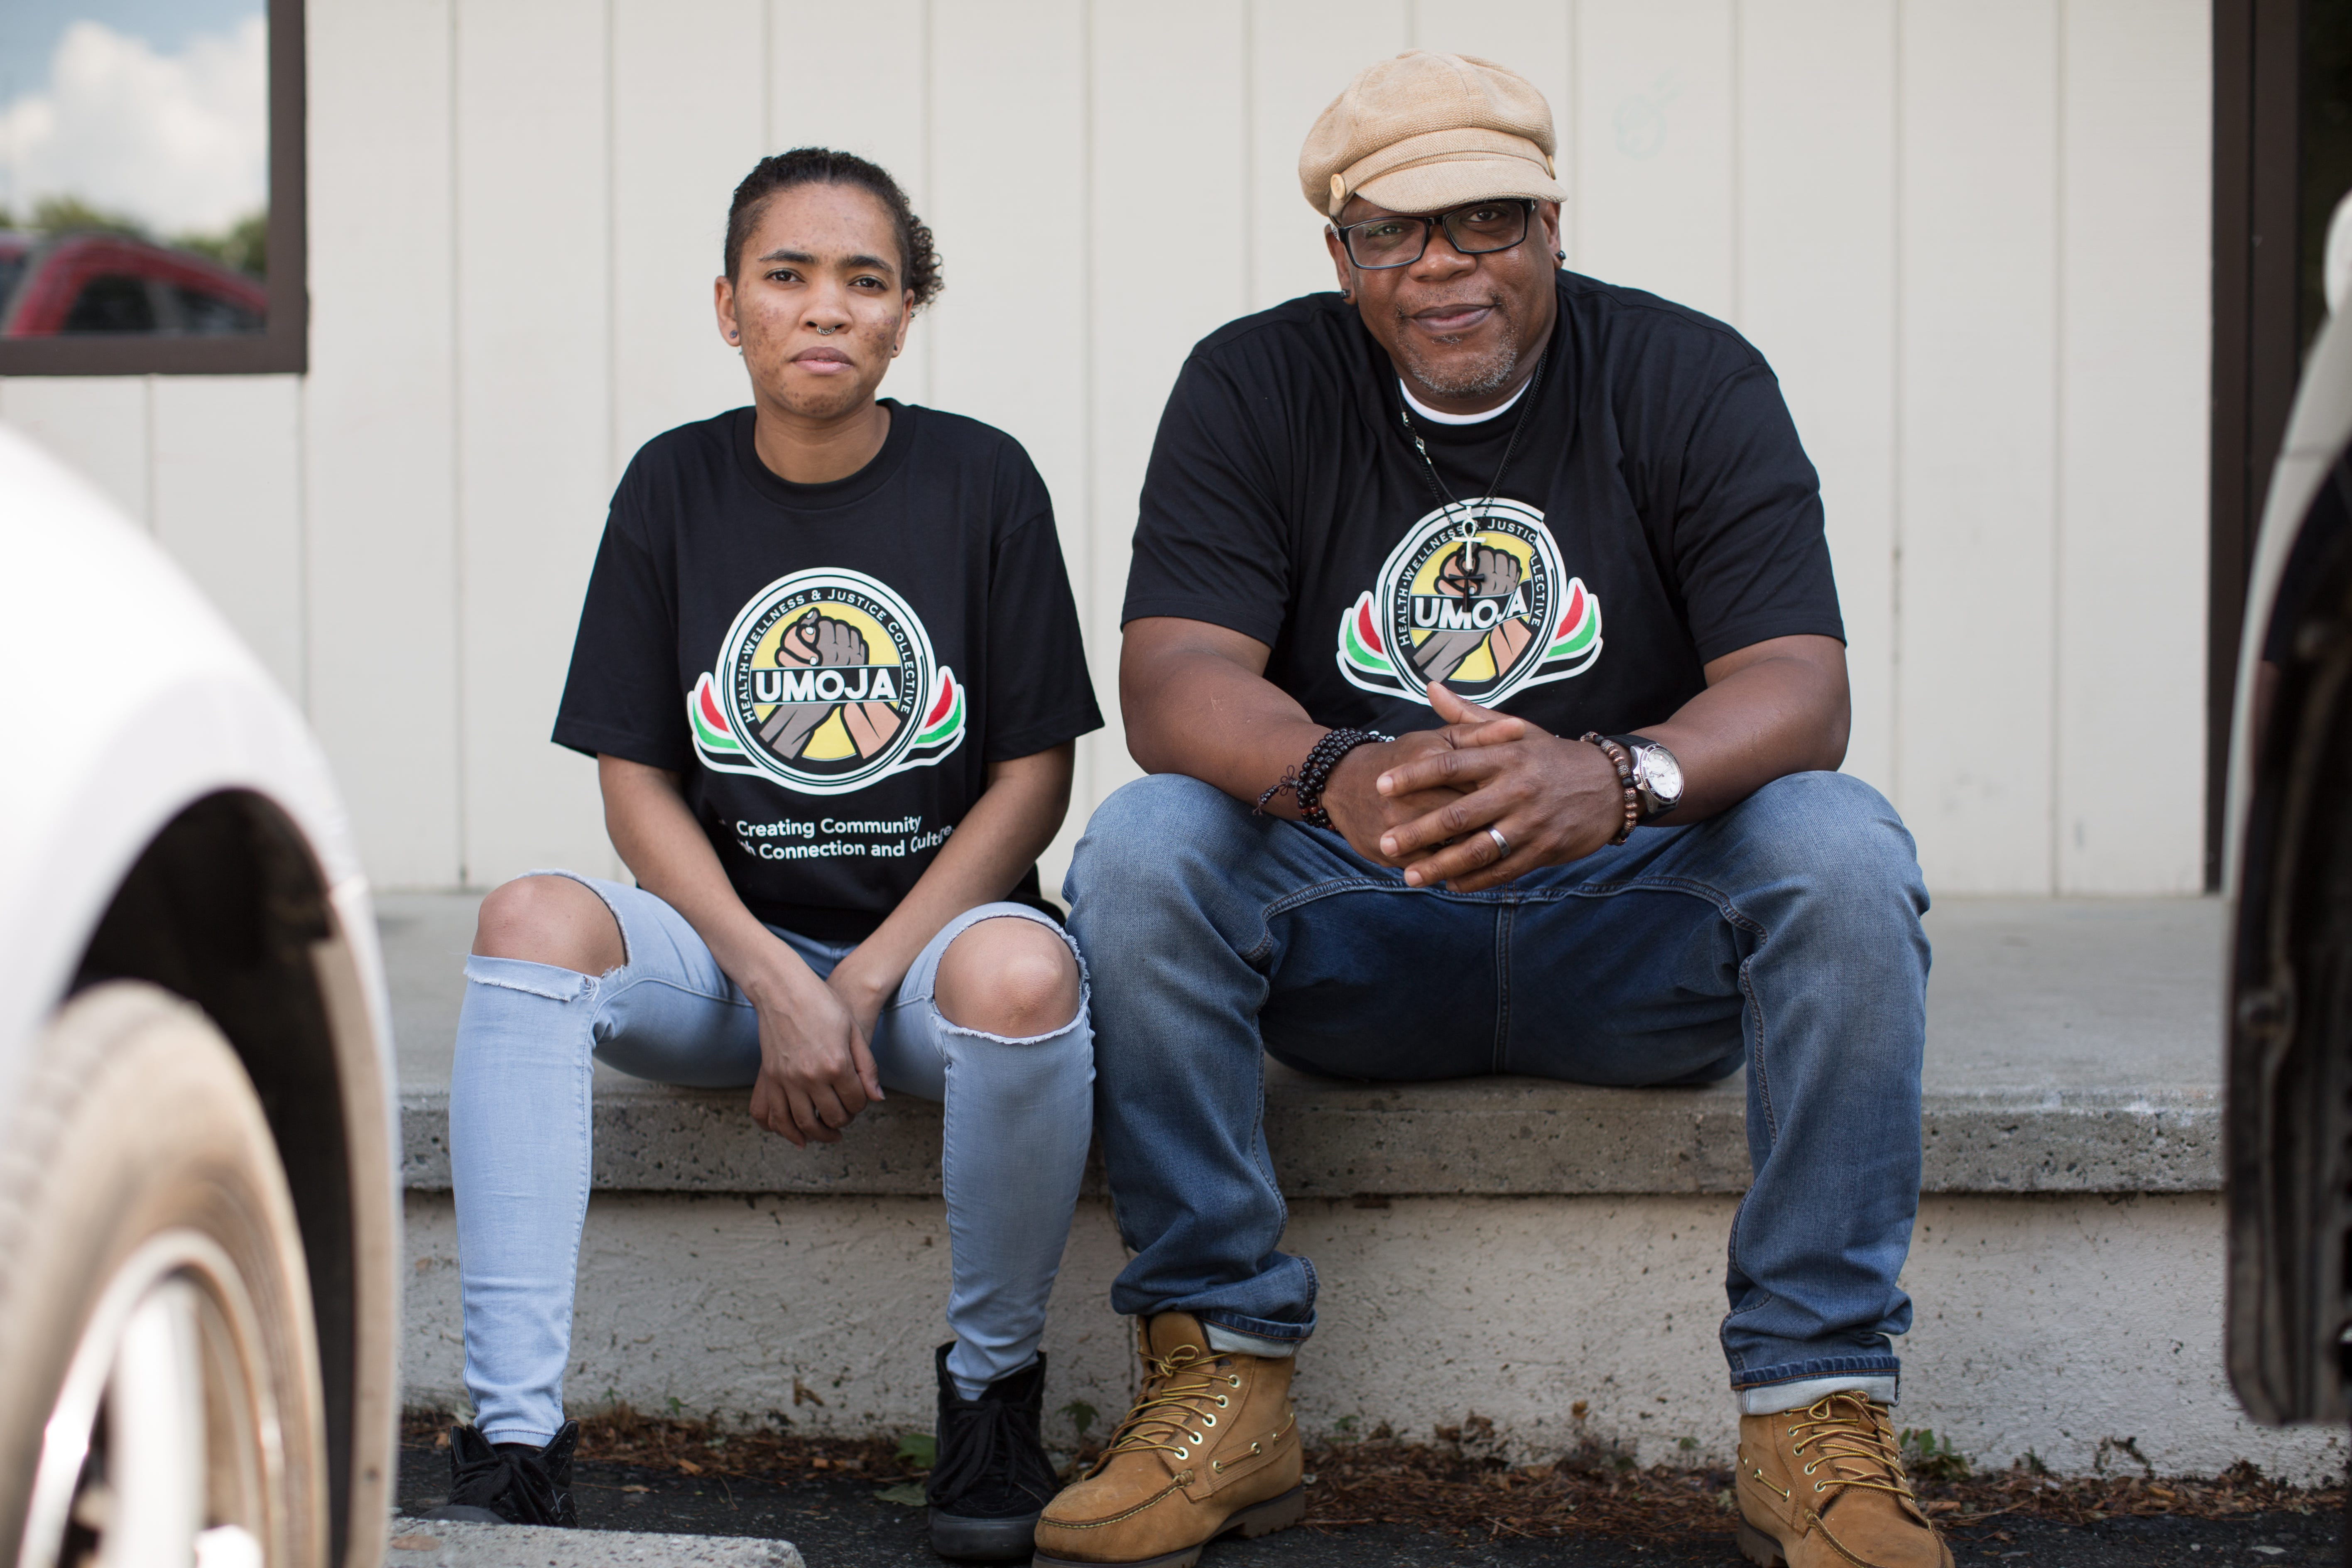 Michael Hayes and Ajax Ravenel posed for a portrait at Umoja Health, Wellness and Justice Collective in Asheville, NC, on June 4, 2020.